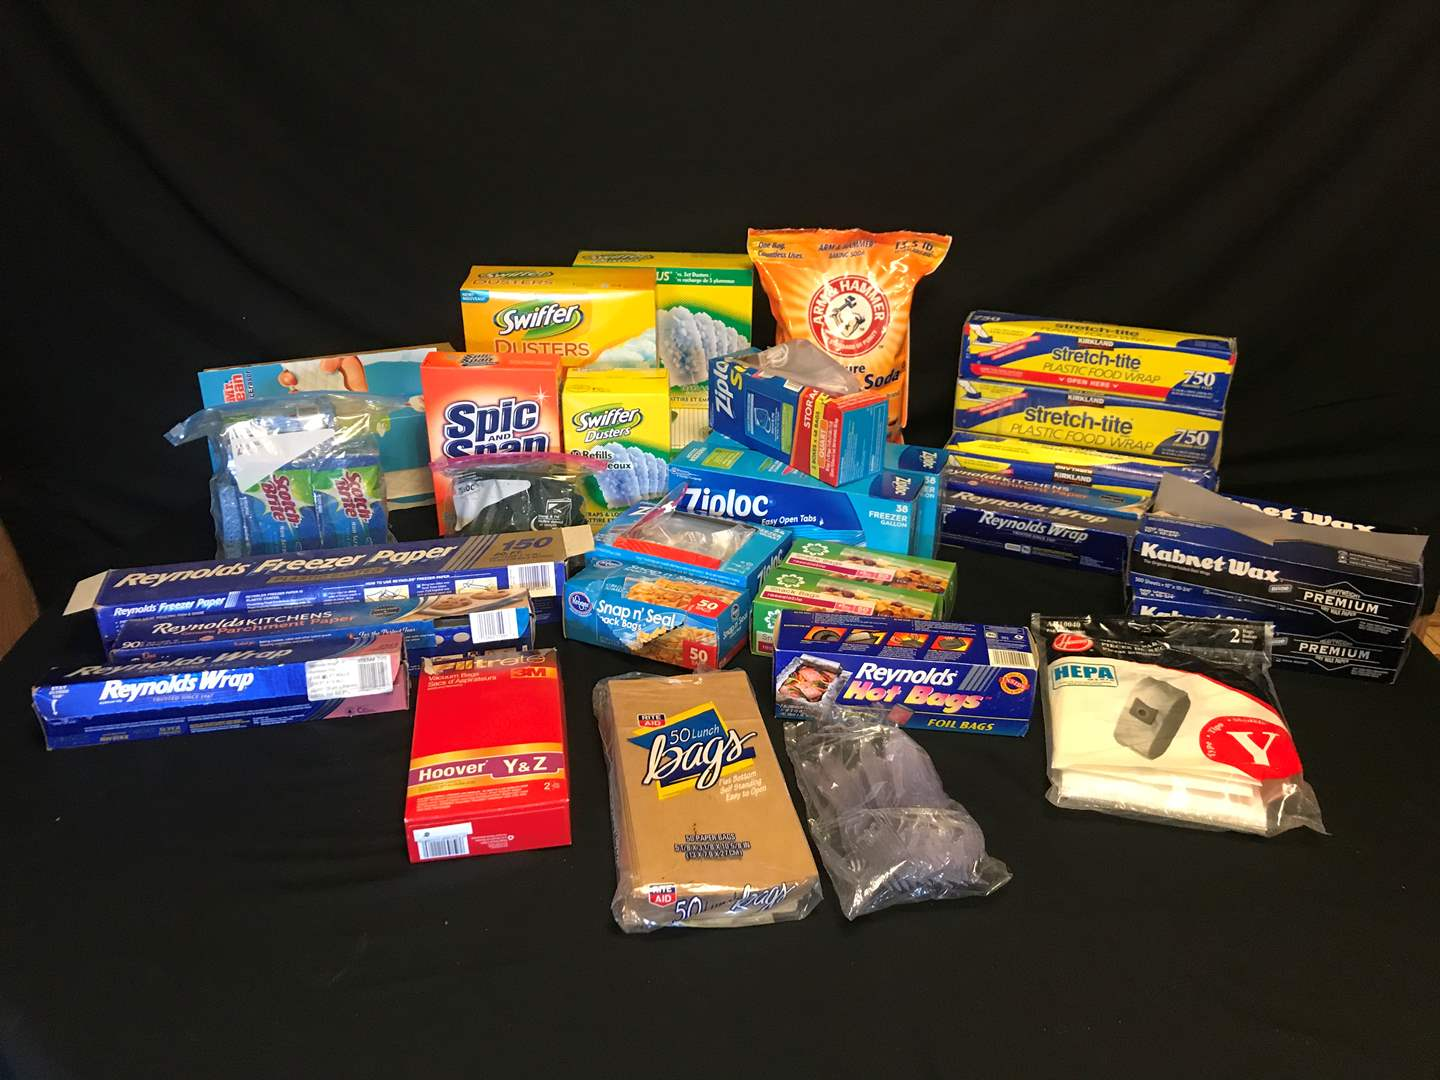 Lot # 52 - Selection of New & Used Items: Ziploc Bags, Swifter Duster & Refills, Sponges, Plastic Wrap & More.. (main image)